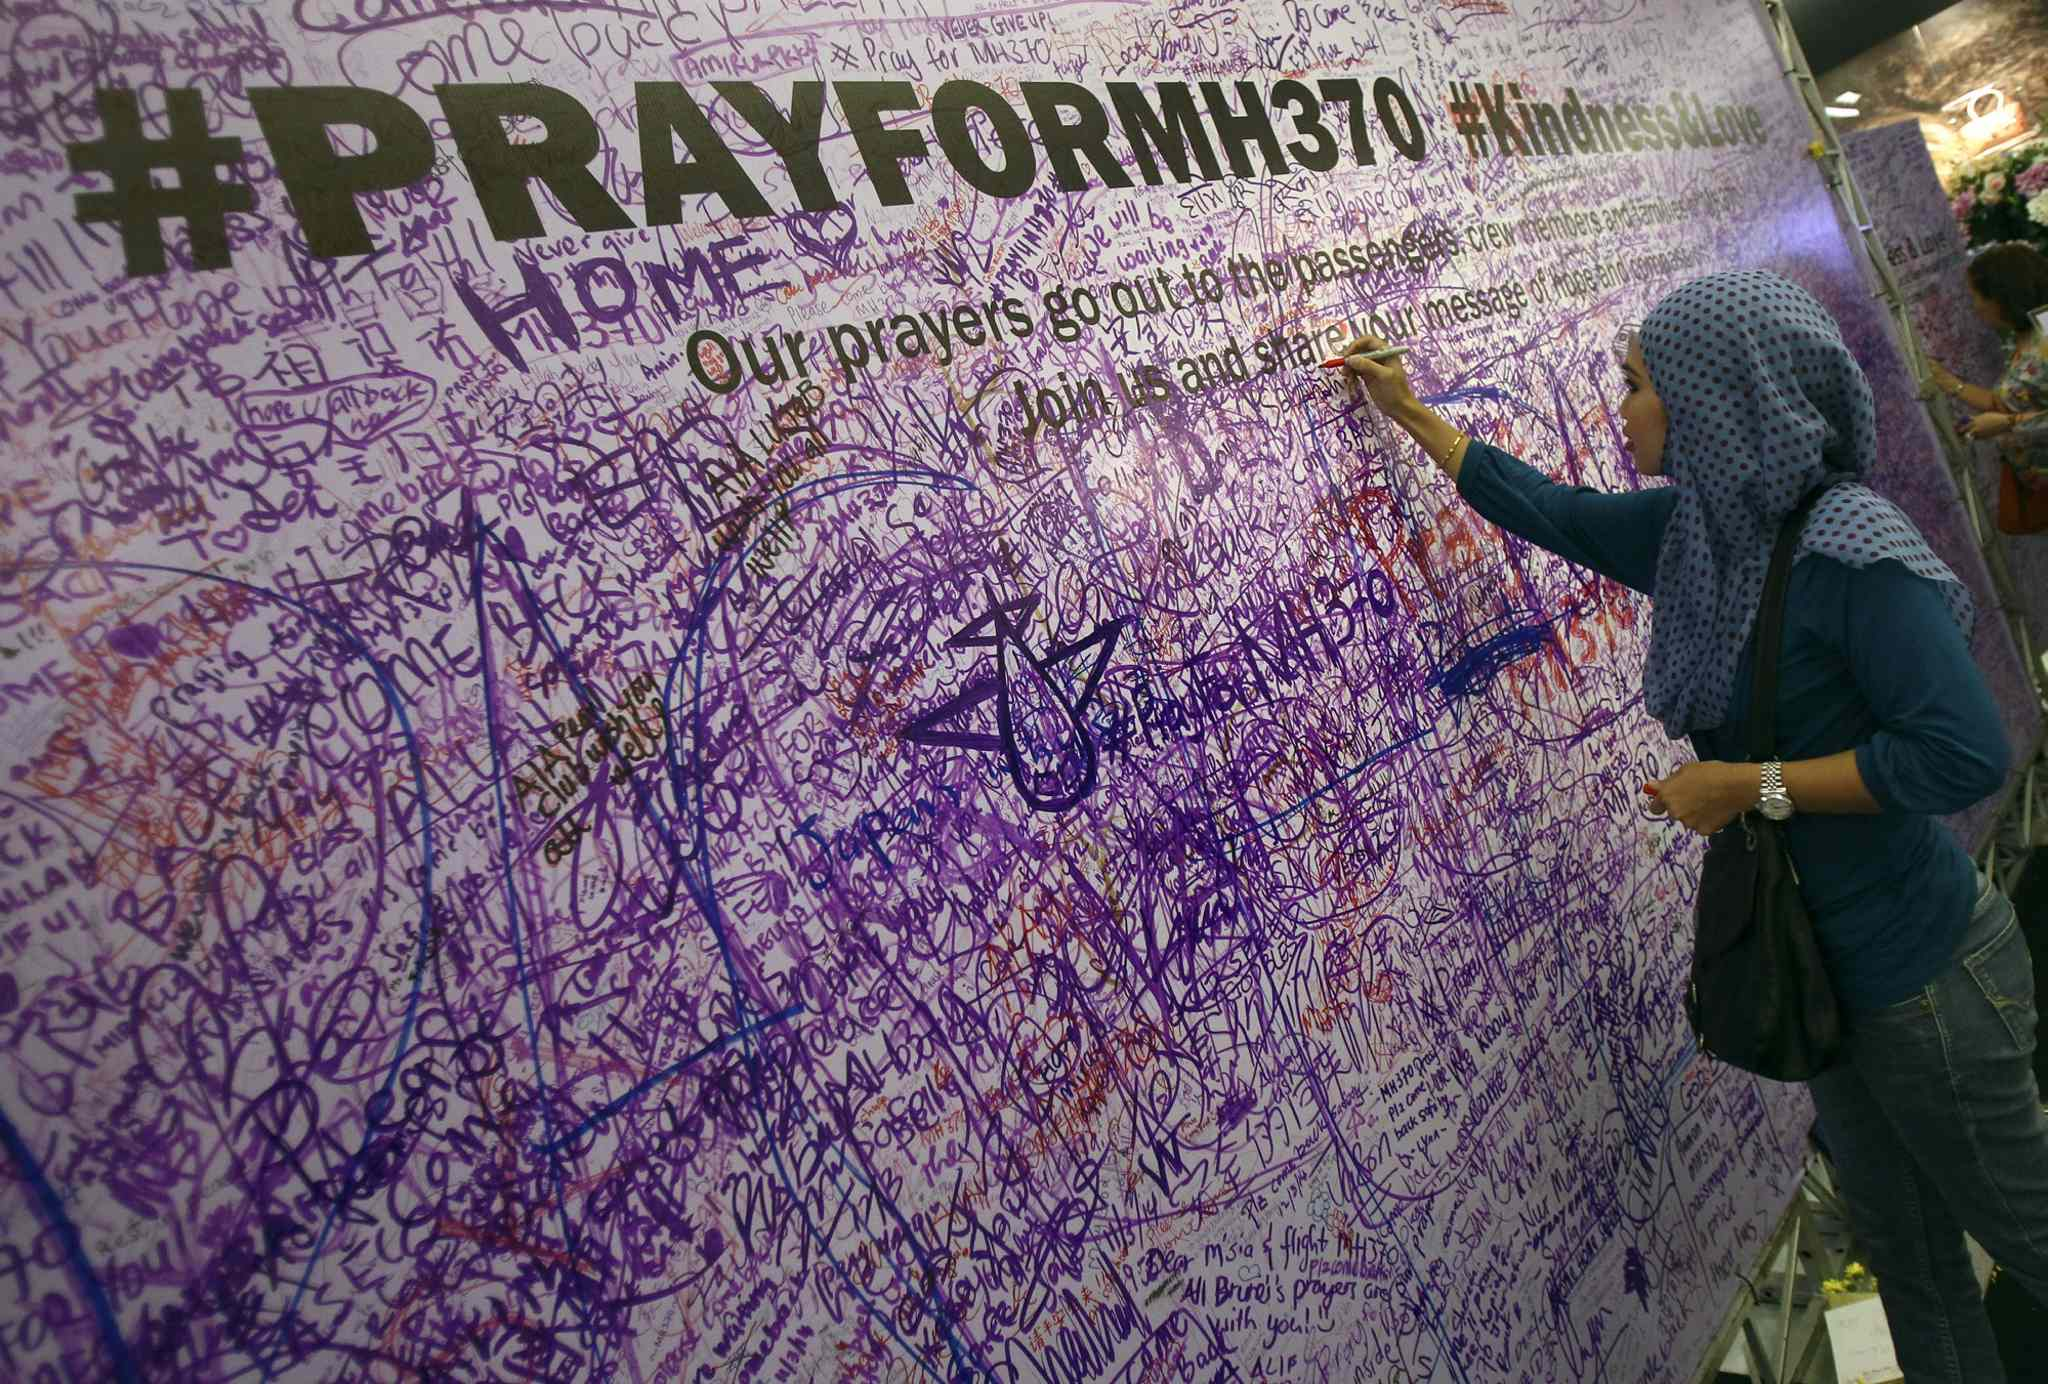 A woman leaves a message for passengers aboard a missing Malaysia Airlines plane, at a shopping mall in Petaling Jaya, near Kuala Lumpur, Malaysia, Sunday, March 16, 2014. Malaysian authorities Sunday were investigating the pilots of the missing jetliner after it was established that whoever flew off with the Boeing 777 had intimate knowledge of the cockpit and knew how to avoid detection when navigating around Asia.